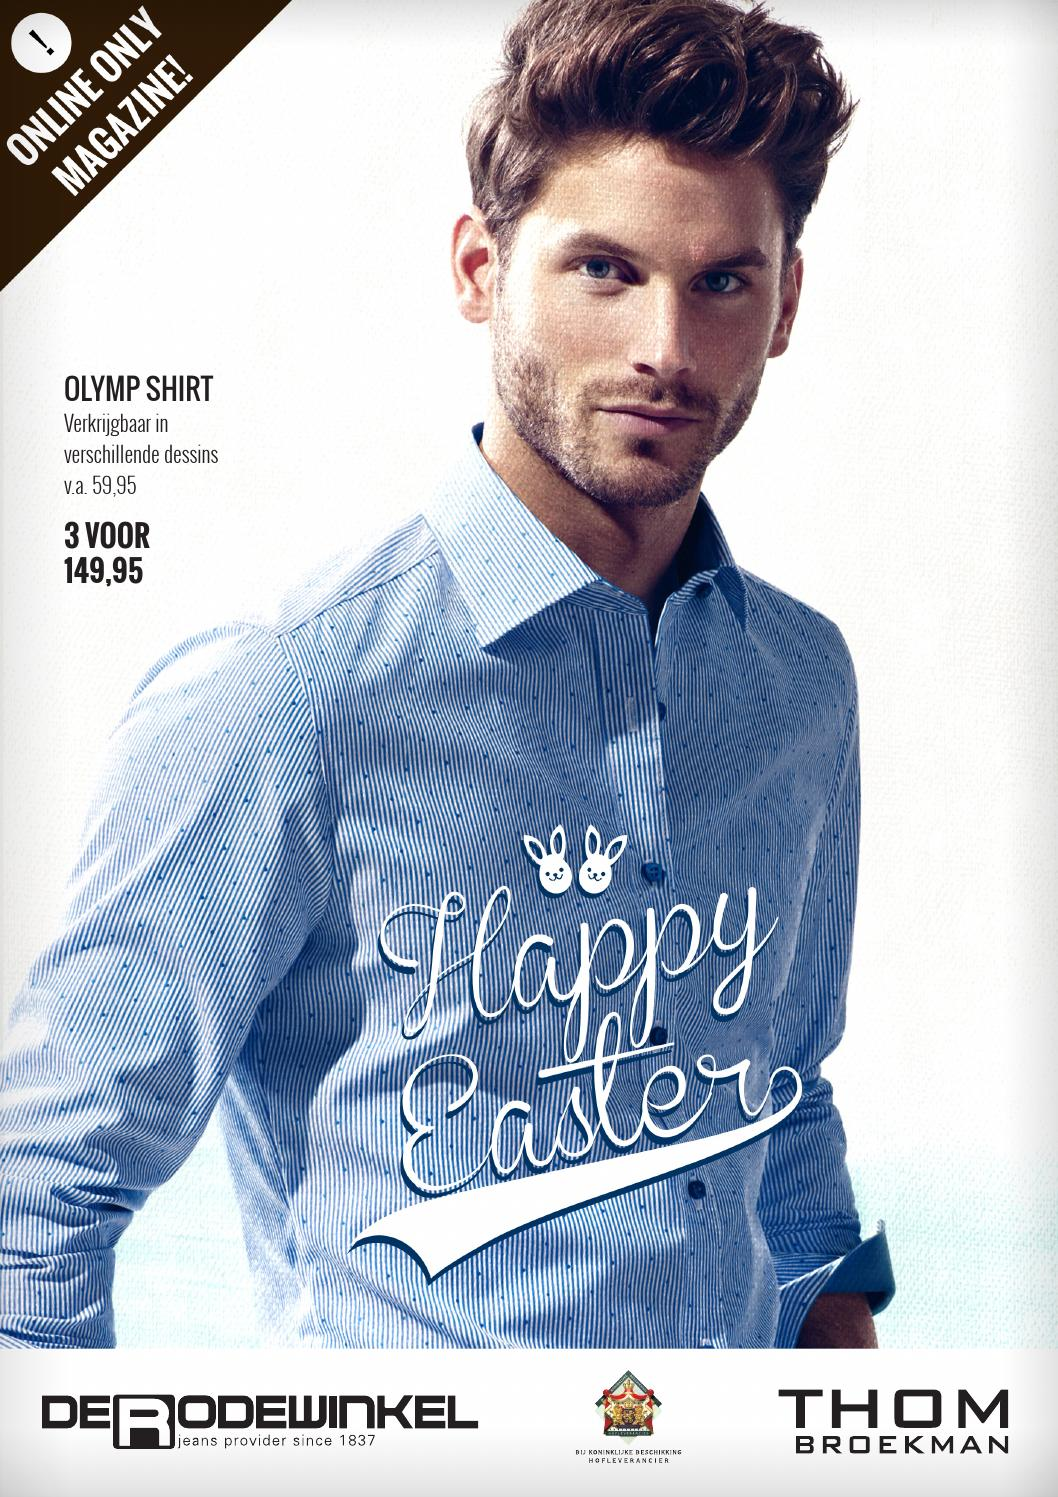 Thom Broekman Online Only Magazine Easter 2014 By Thom Broekman Issuu